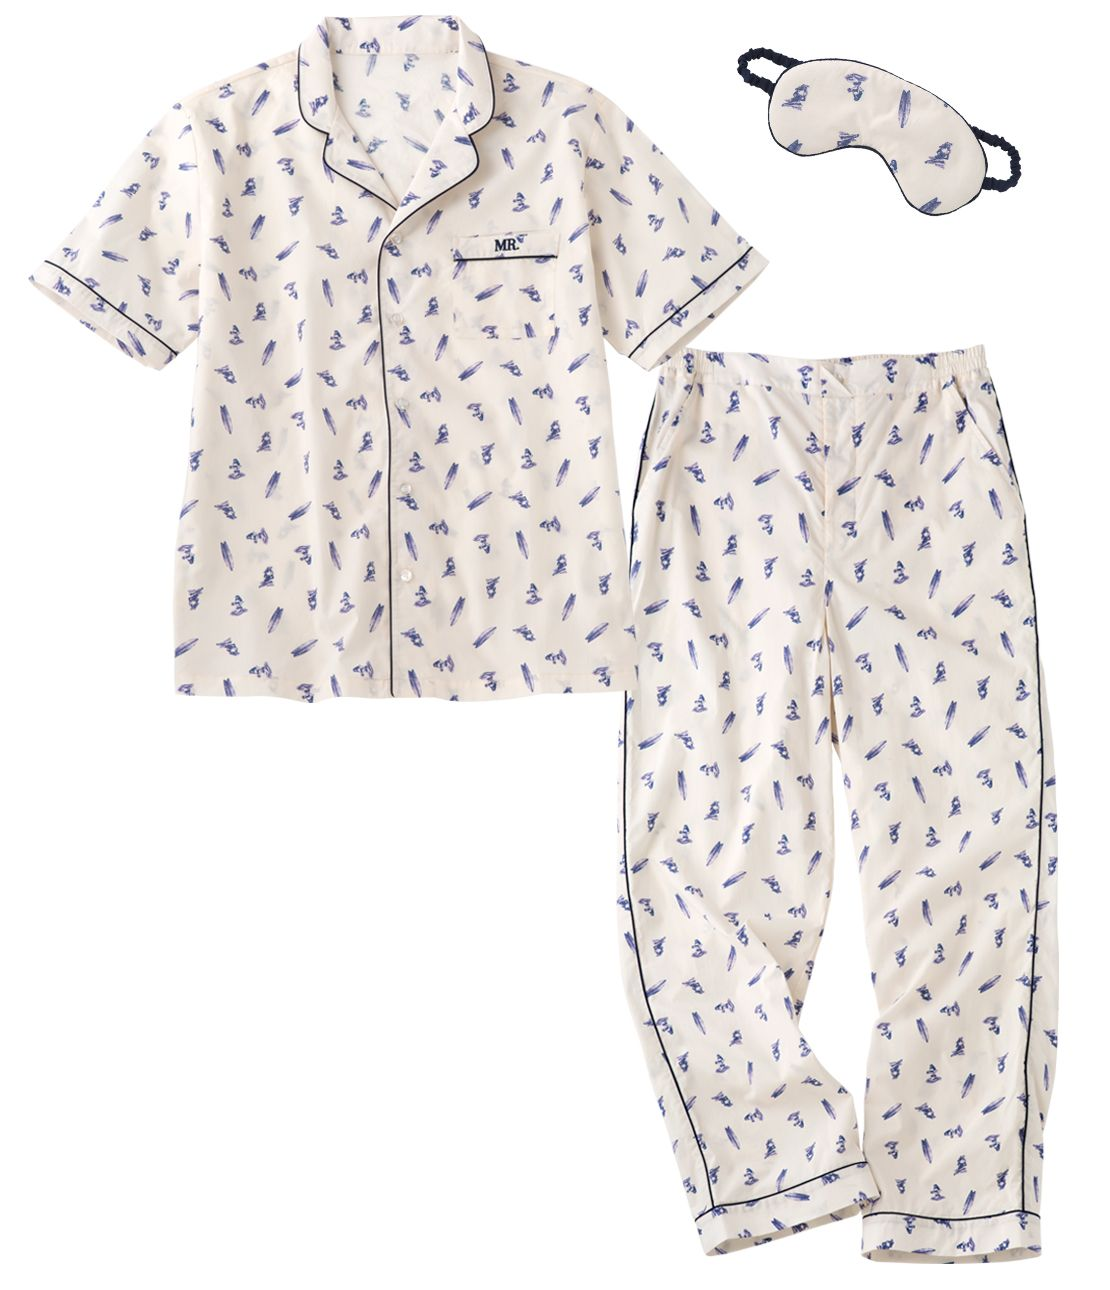 Men's cotton shirts pajamas set